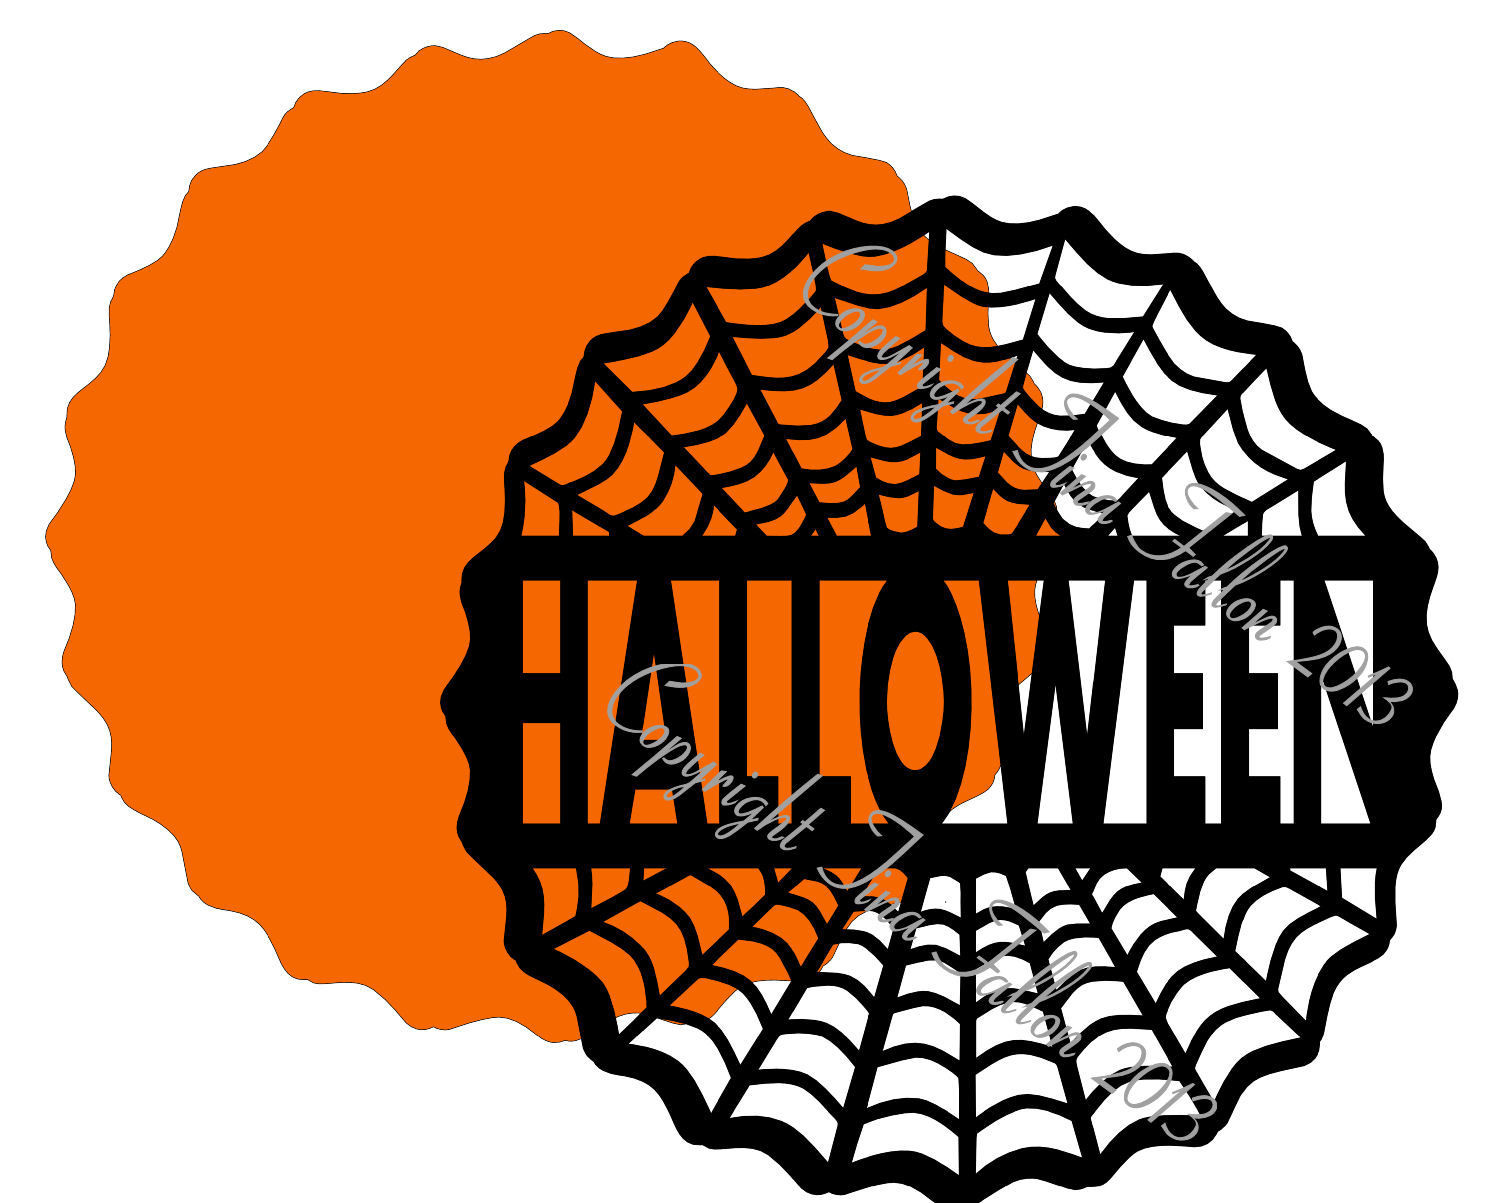 Halloween 6 - design for vinyl , charger plates and glass blocks